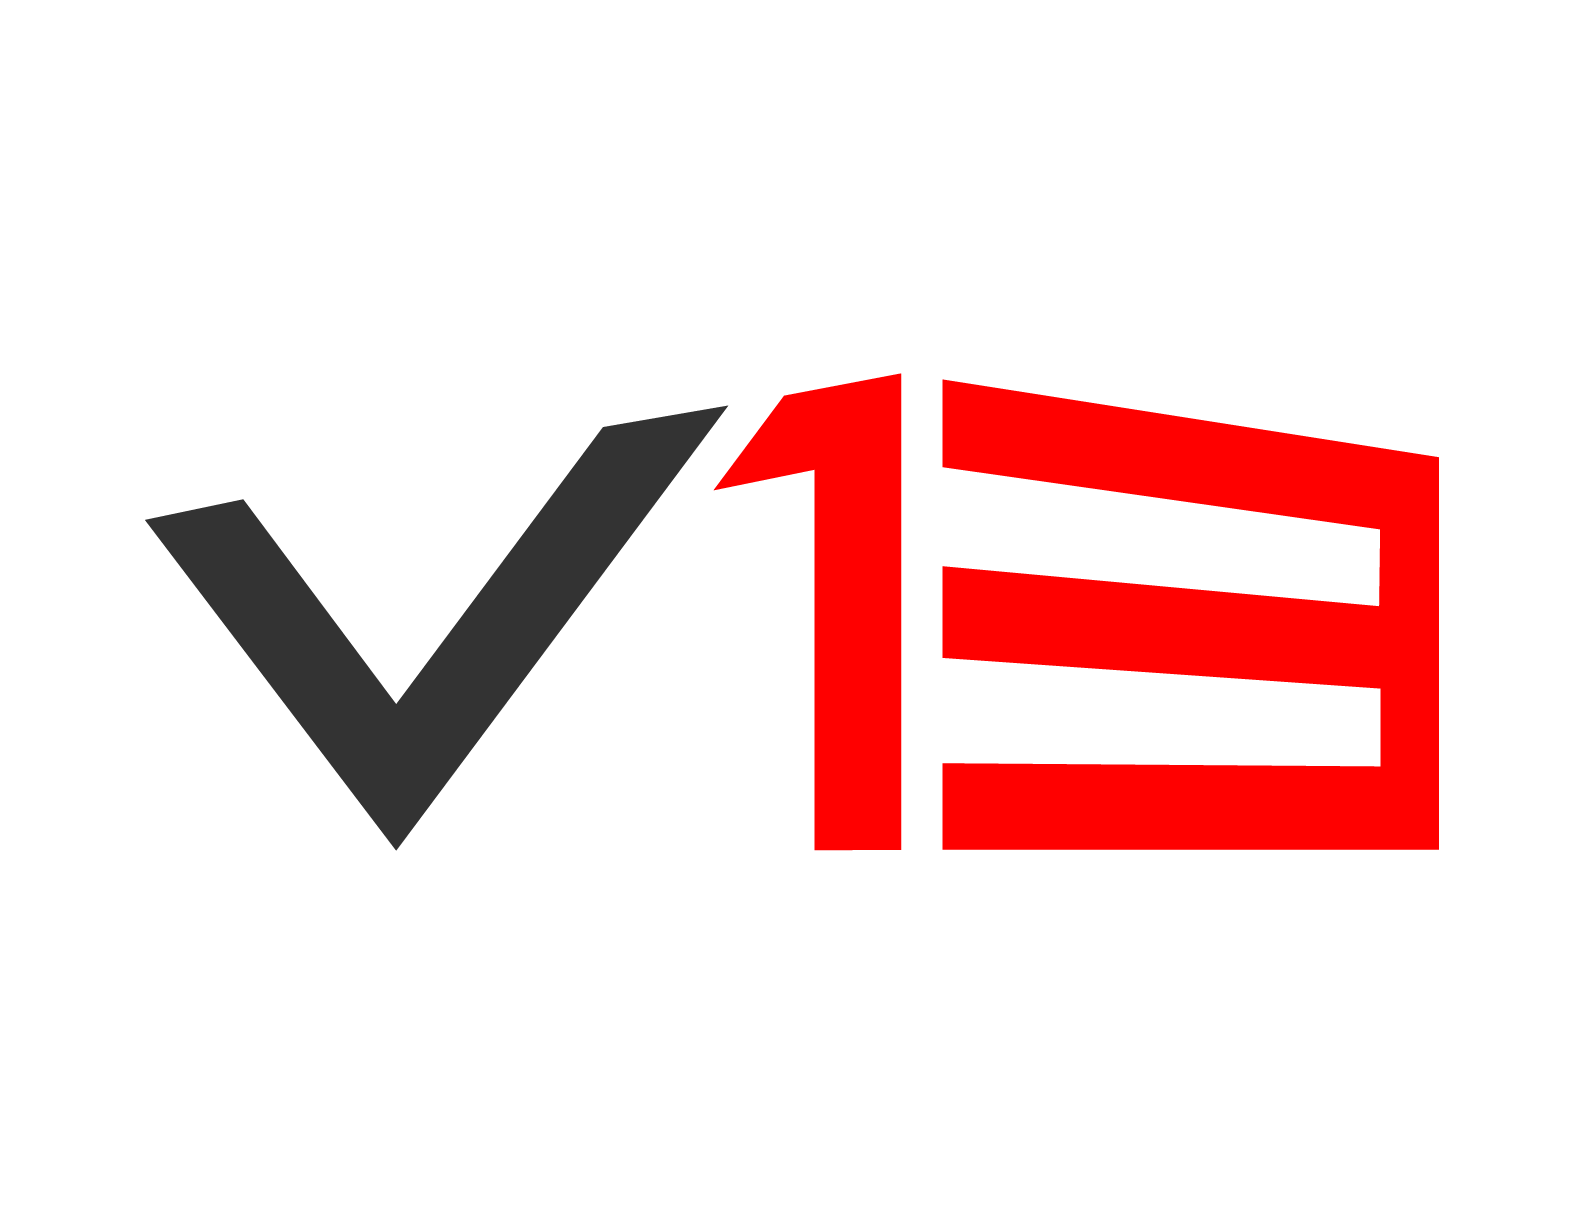 V13 Badge_Translucent